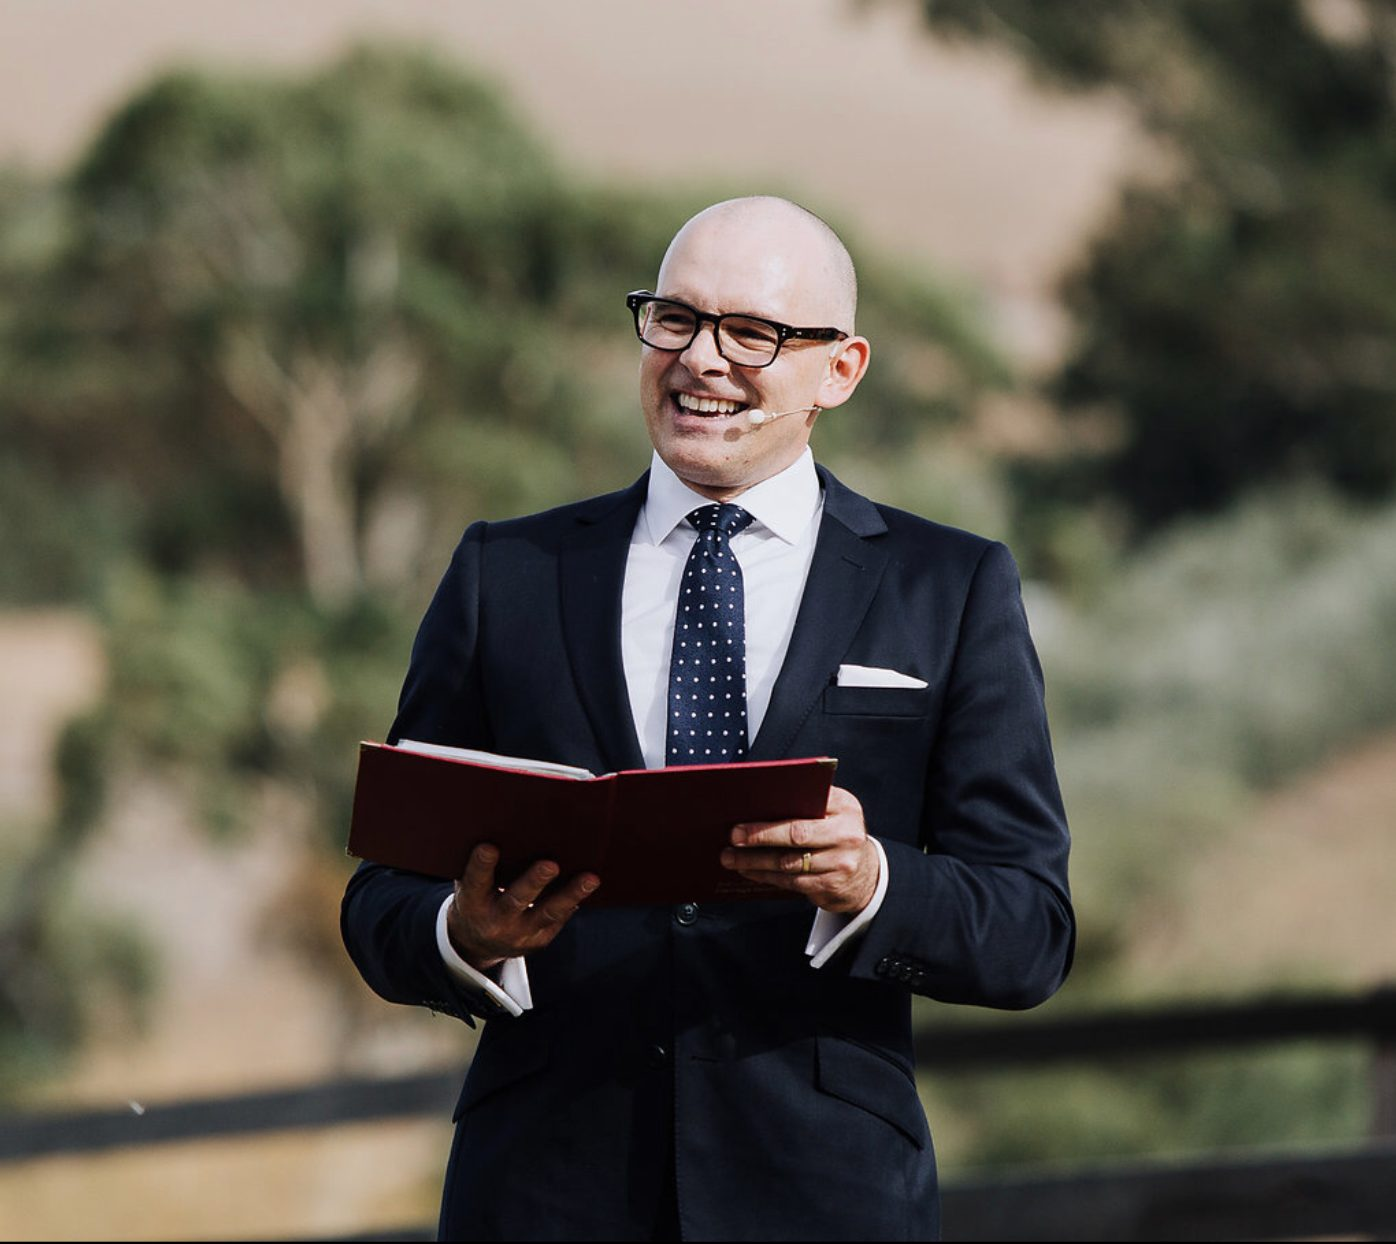 Melbourne Marriage Celebrant - John Beck